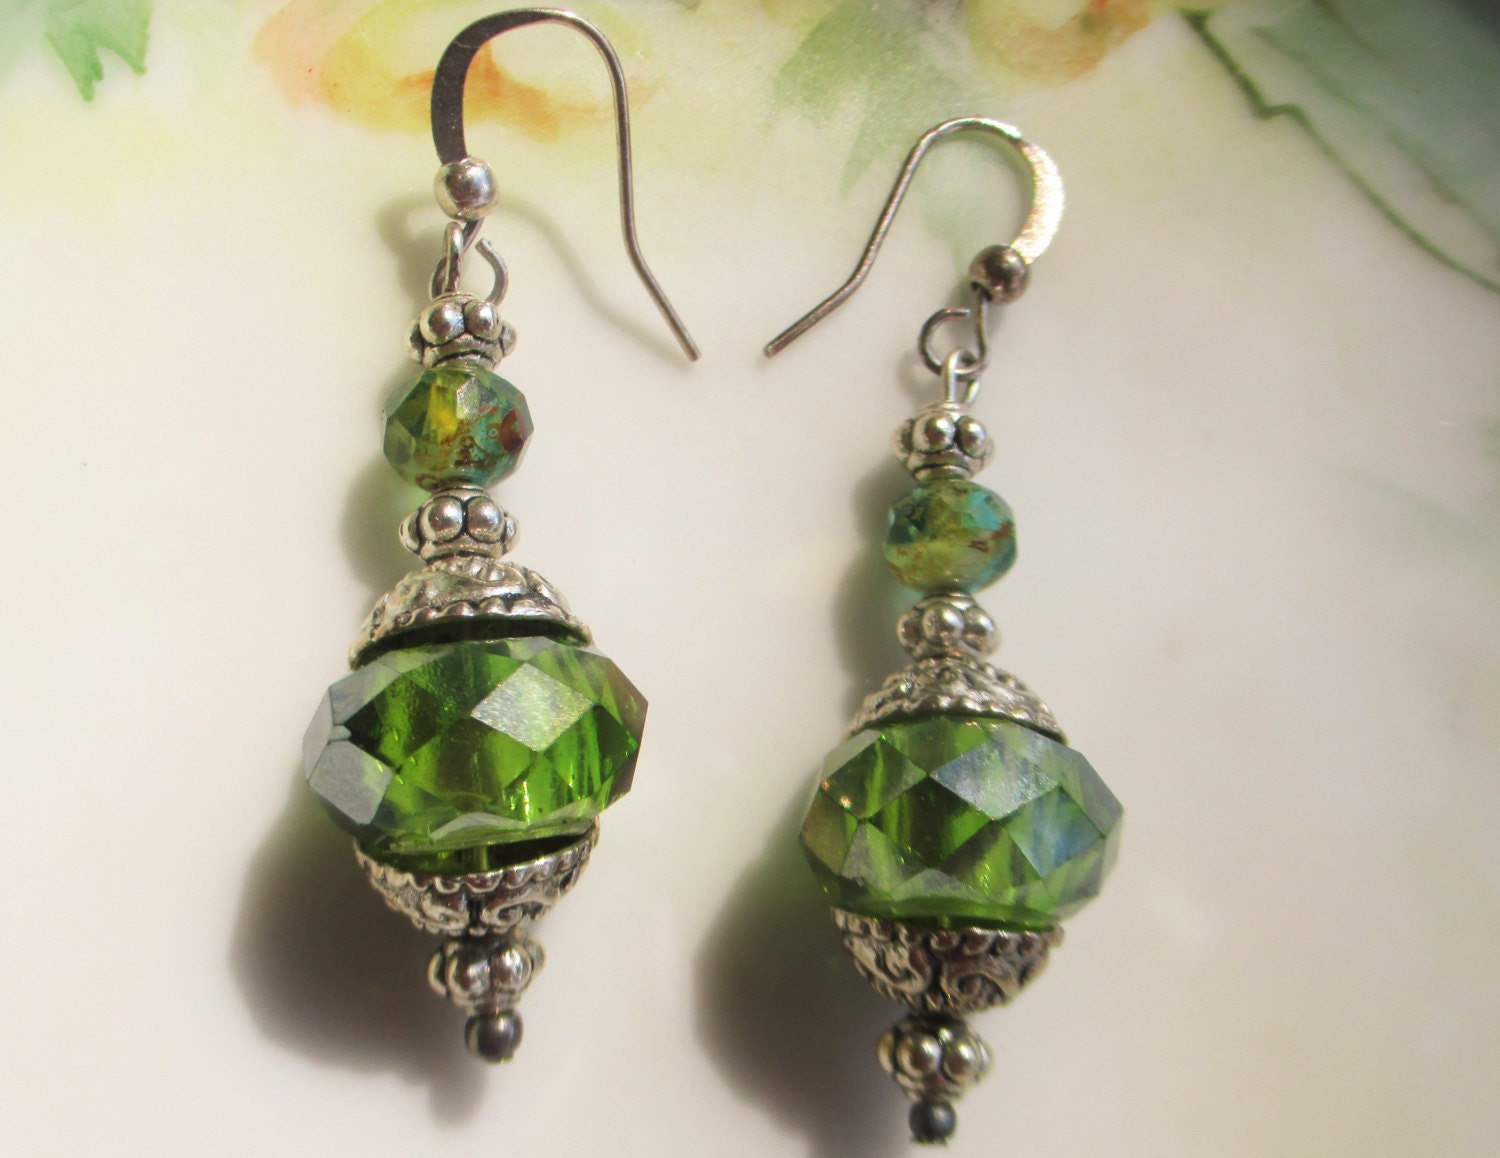 picasso earrings sea green earrings silver earrings boho